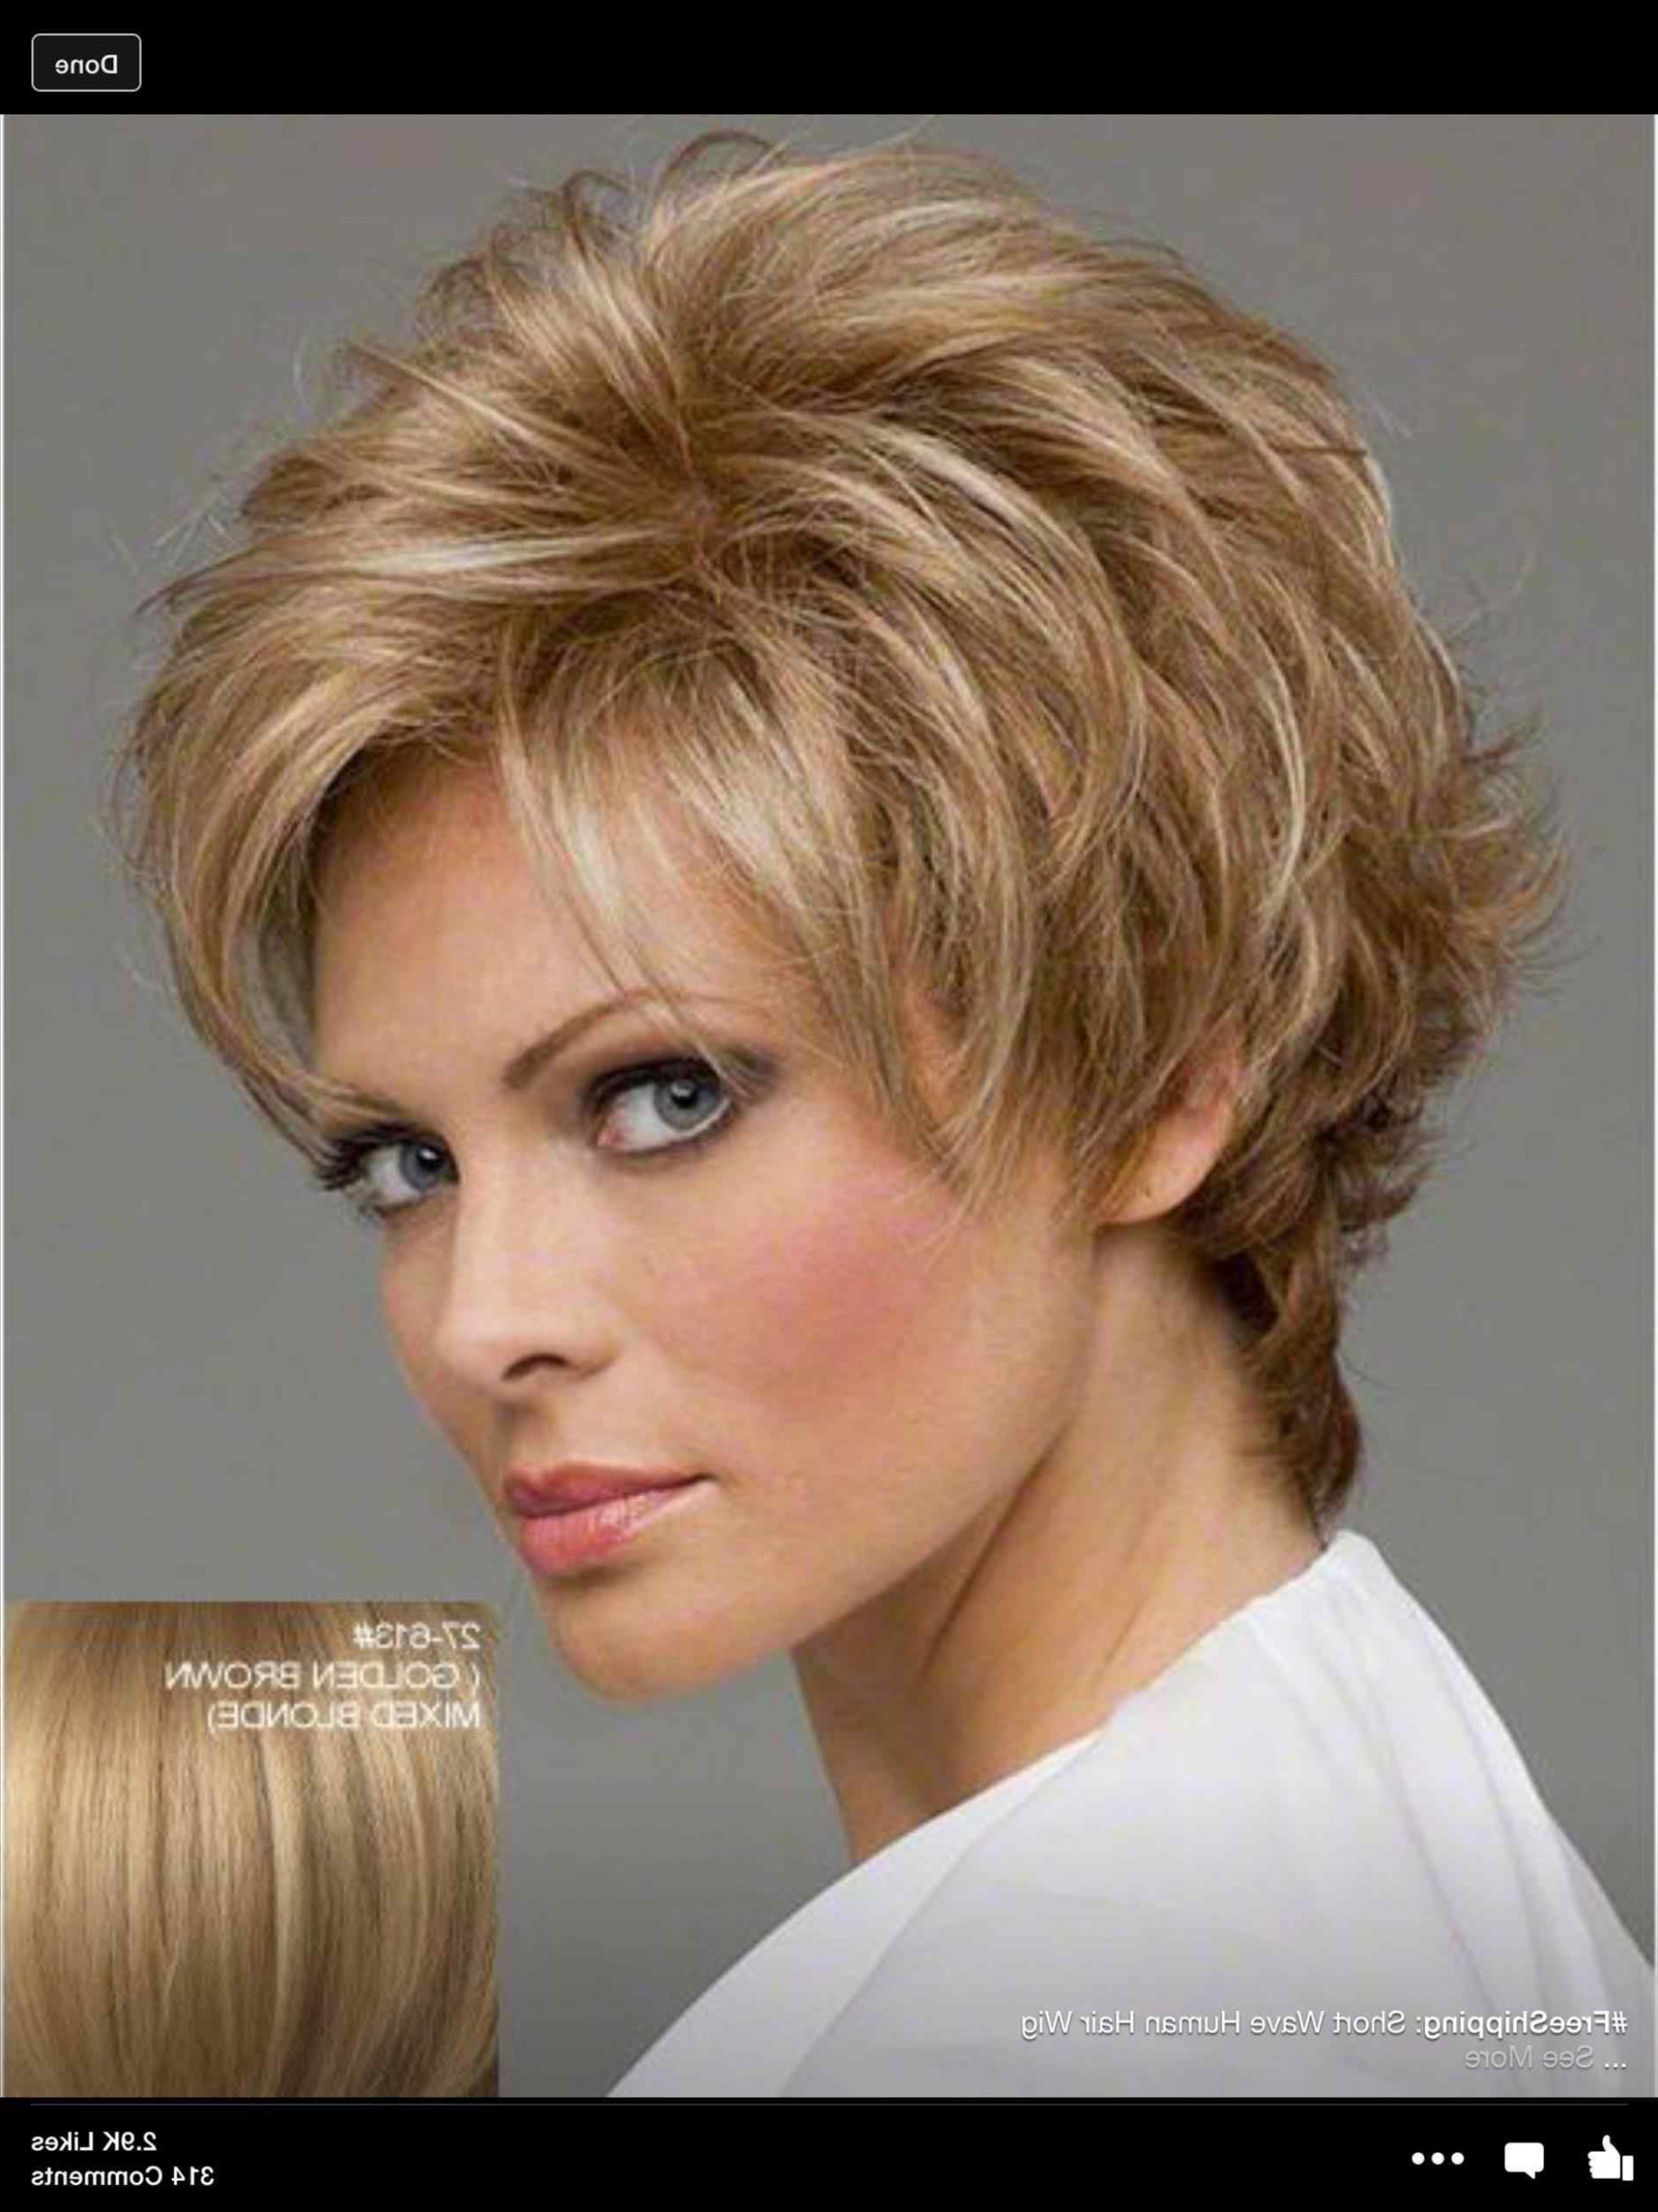 And Round Faces Beautiful Short Hairstyles For Fine Hair With Short Hairstyles For Thin Fine Hair And Round Face (View 25 of 25)